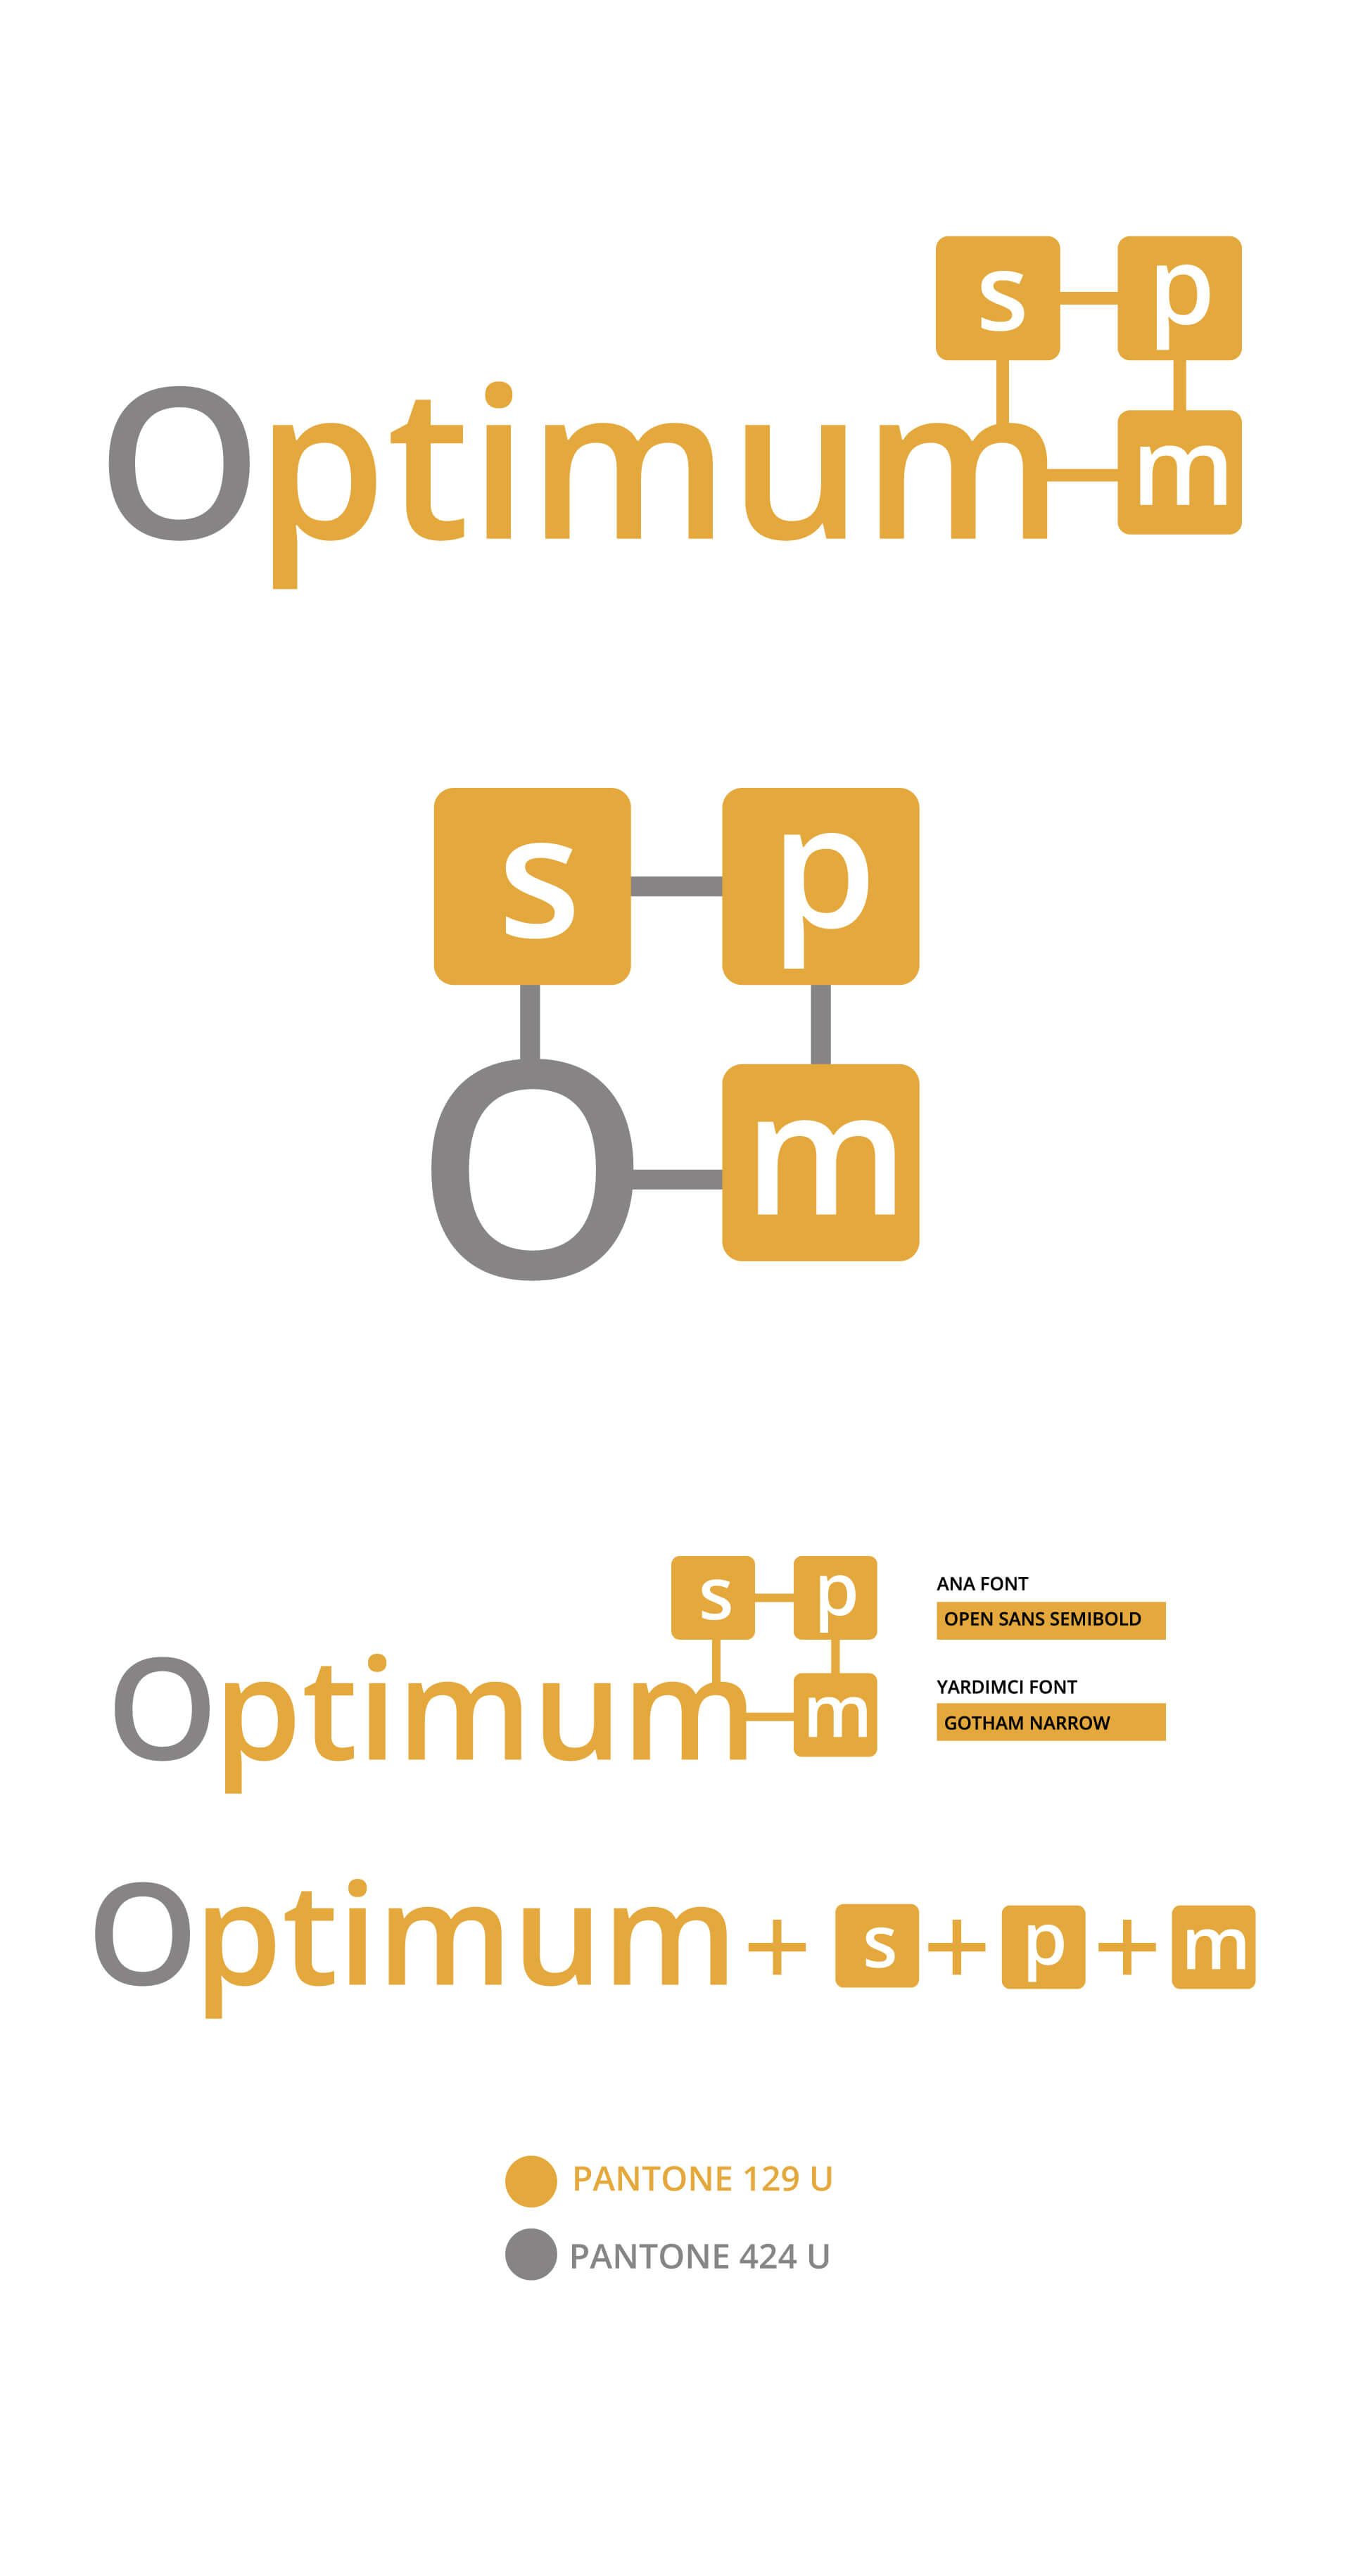 optimumspm_tasarim_1